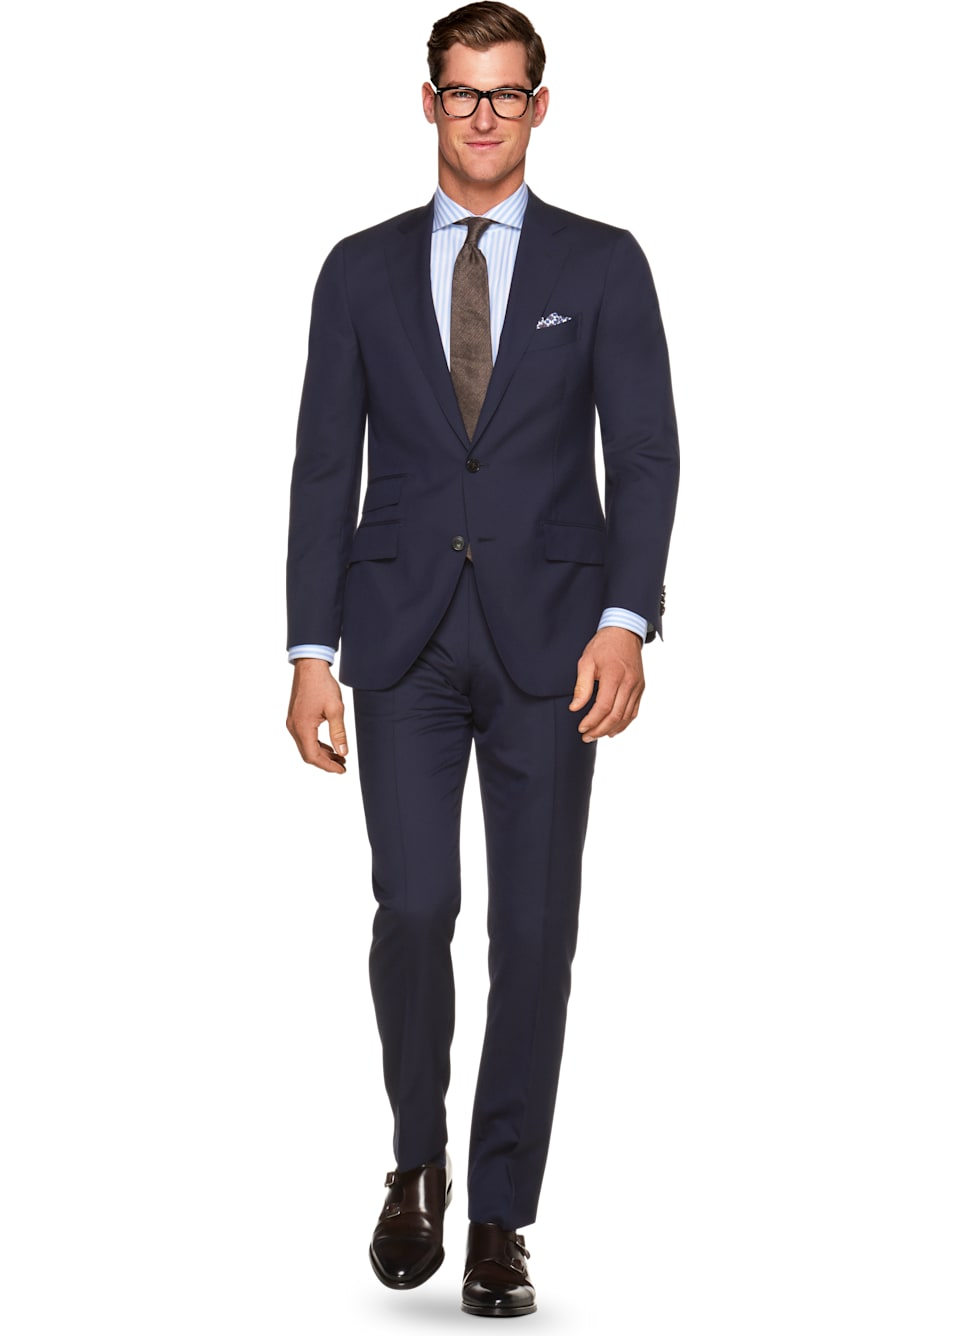 sienna blue plain suit- suit supply.jpg